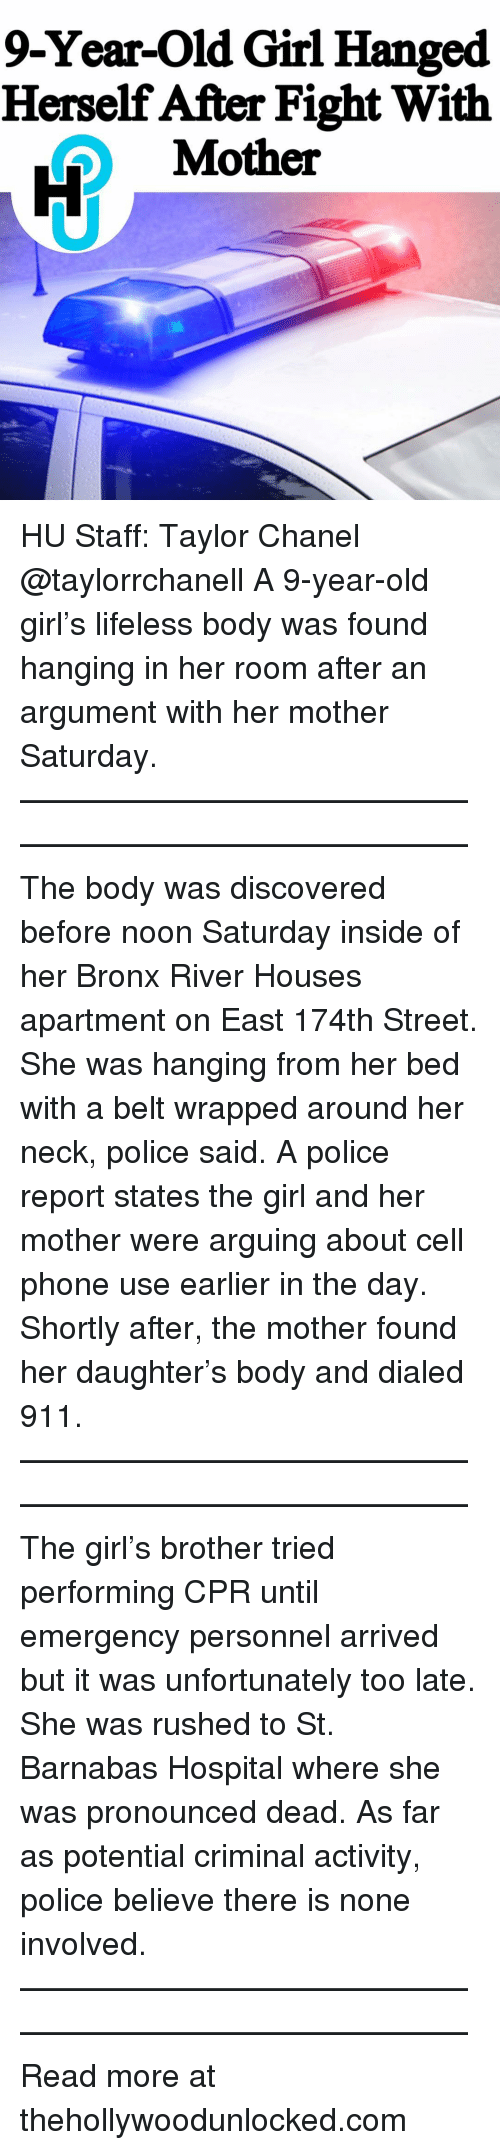 cpr: 9-Year-Old Girl Hanged  Herself After Fight With  Mother HU Staff: Taylor Chanel @taylorrchanell A 9-year-old girl's lifeless body was found hanging in her room after an argument with her mother Saturday. ———————————————————————————— The body was discovered before noon Saturday inside of her Bronx River Houses apartment on East 174th Street. She was hanging from her bed with a belt wrapped around her neck, police said. A police report states the girl and her mother were arguing about cell phone use earlier in the day. Shortly after, the mother found her daughter's body and dialed 911. ———————————————————————————— The girl's brother tried performing CPR until emergency personnel arrived but it was unfortunately too late. She was rushed to St. Barnabas Hospital where she was pronounced dead. As far as potential criminal activity, police believe there is none involved. ———————————————————————————— Read more at thehollywoodunlocked.com